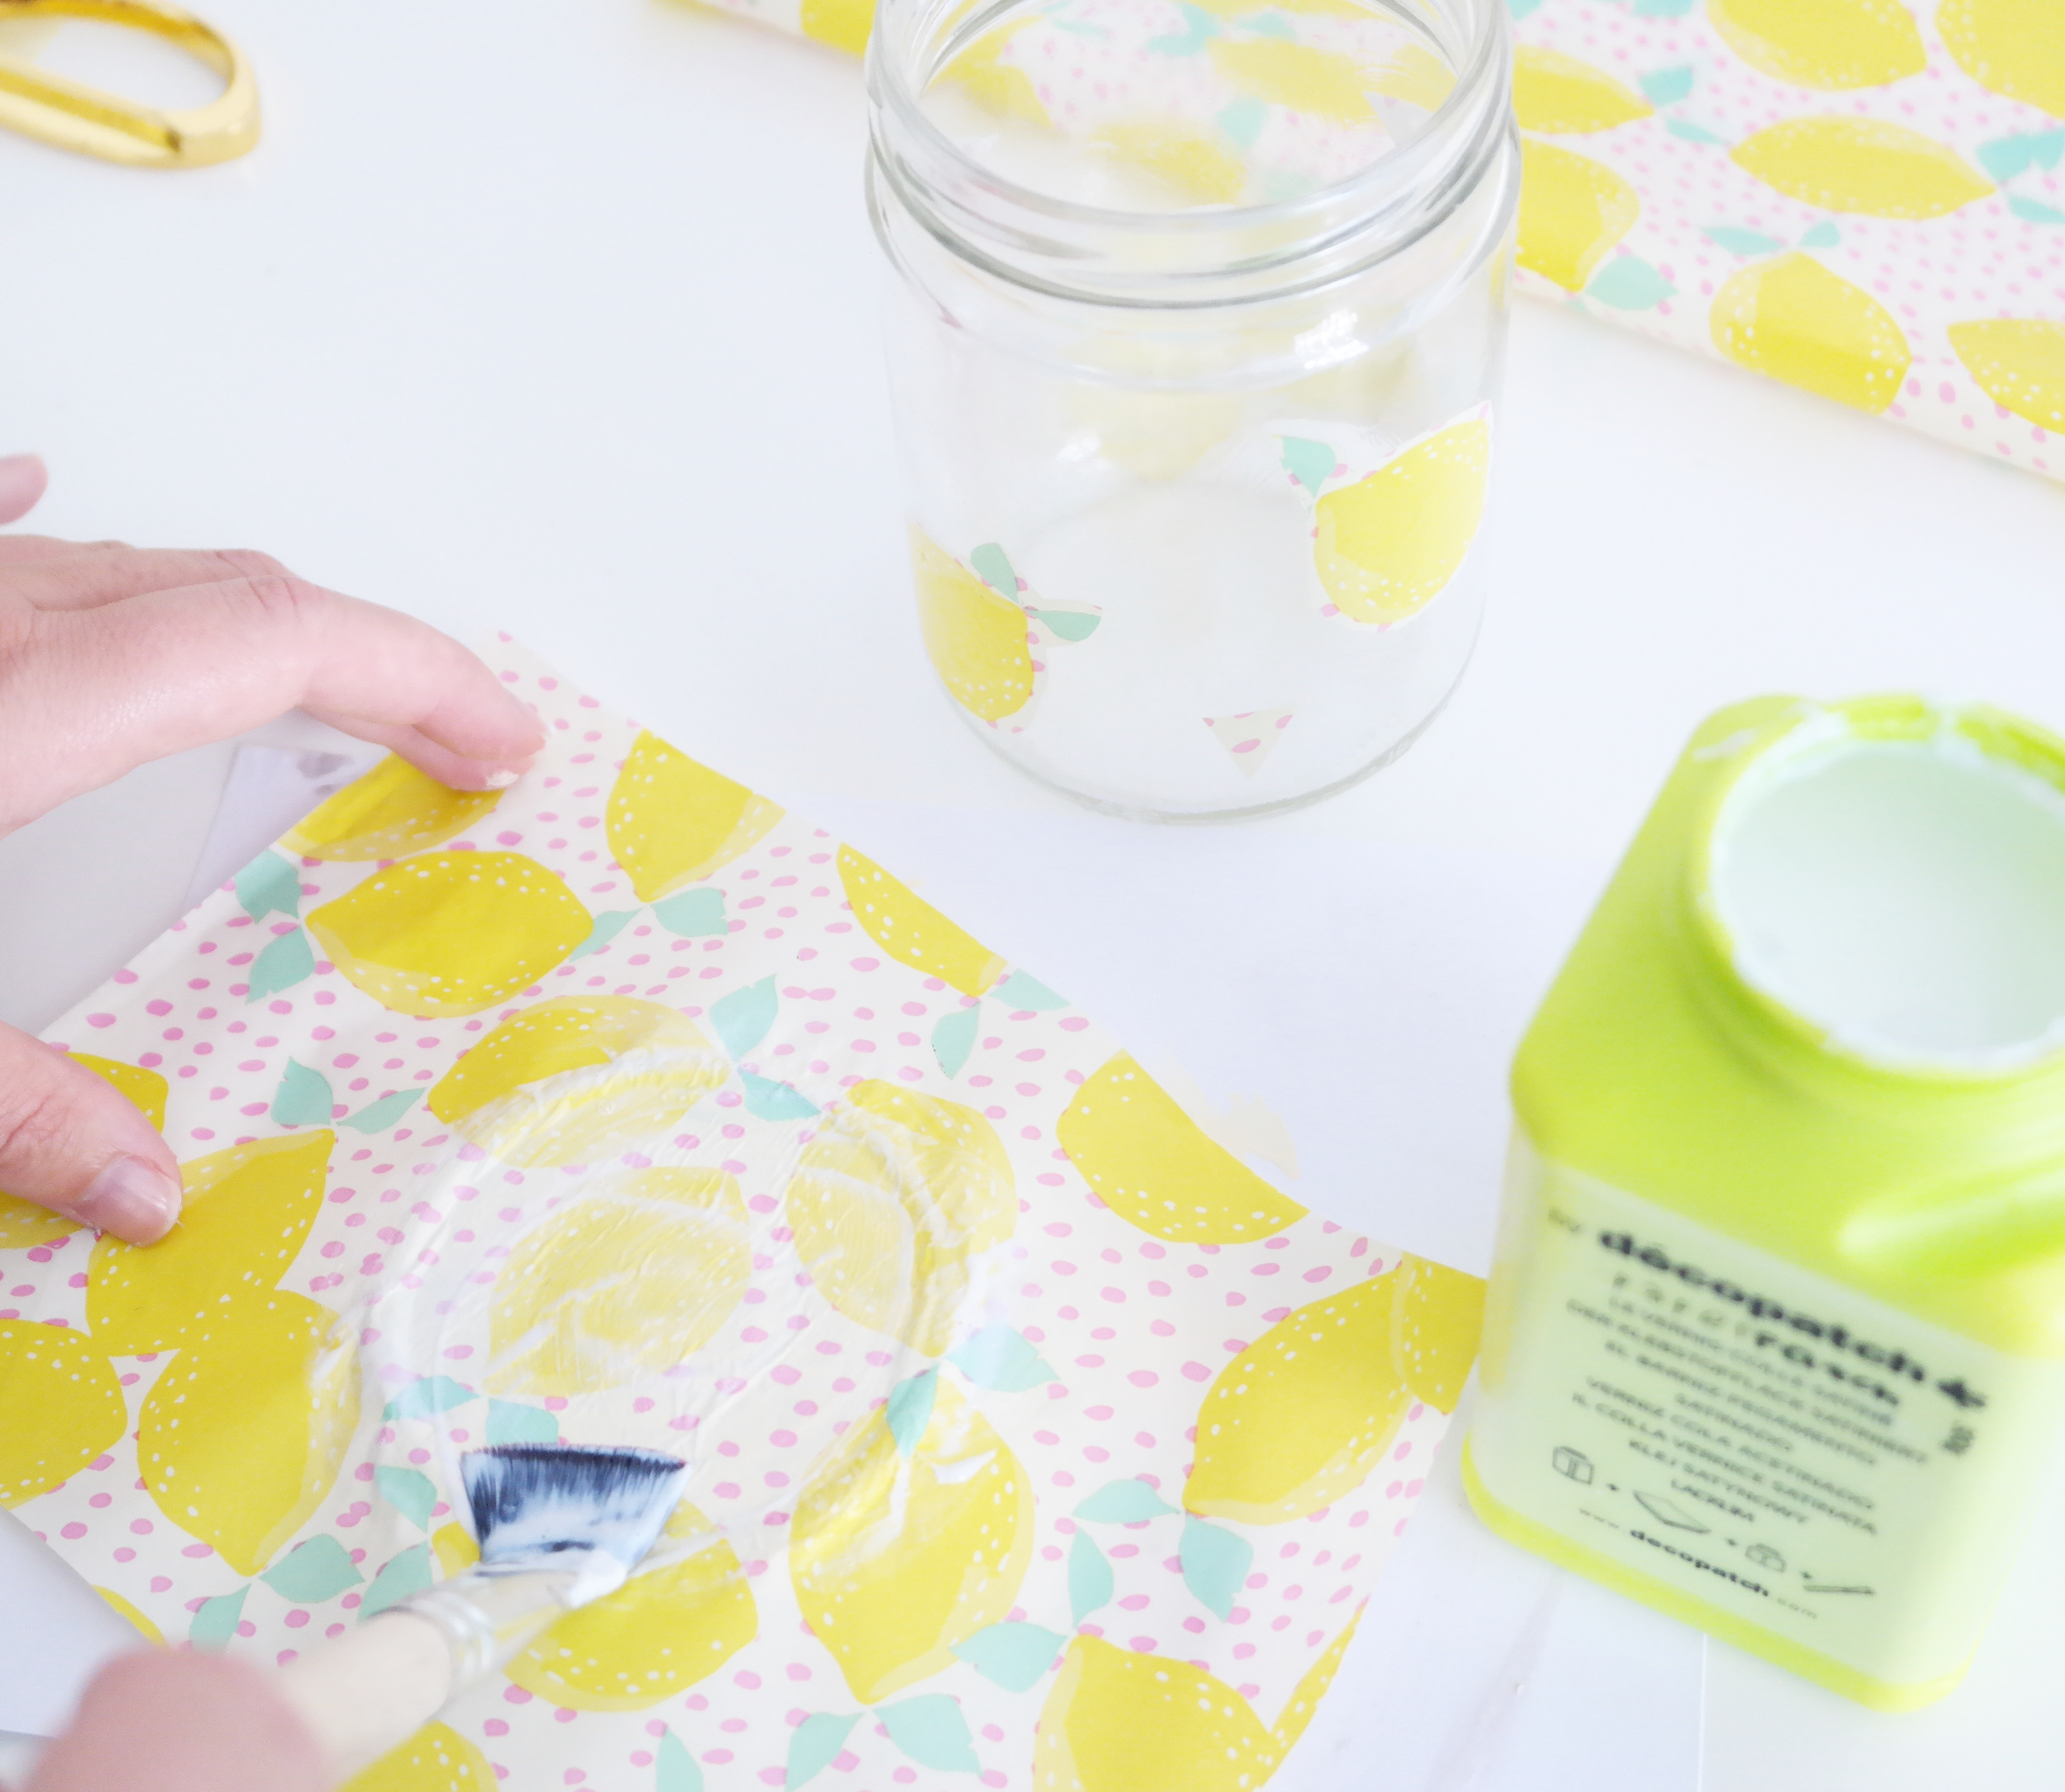 papier-decopatch-bocal-verre-citron